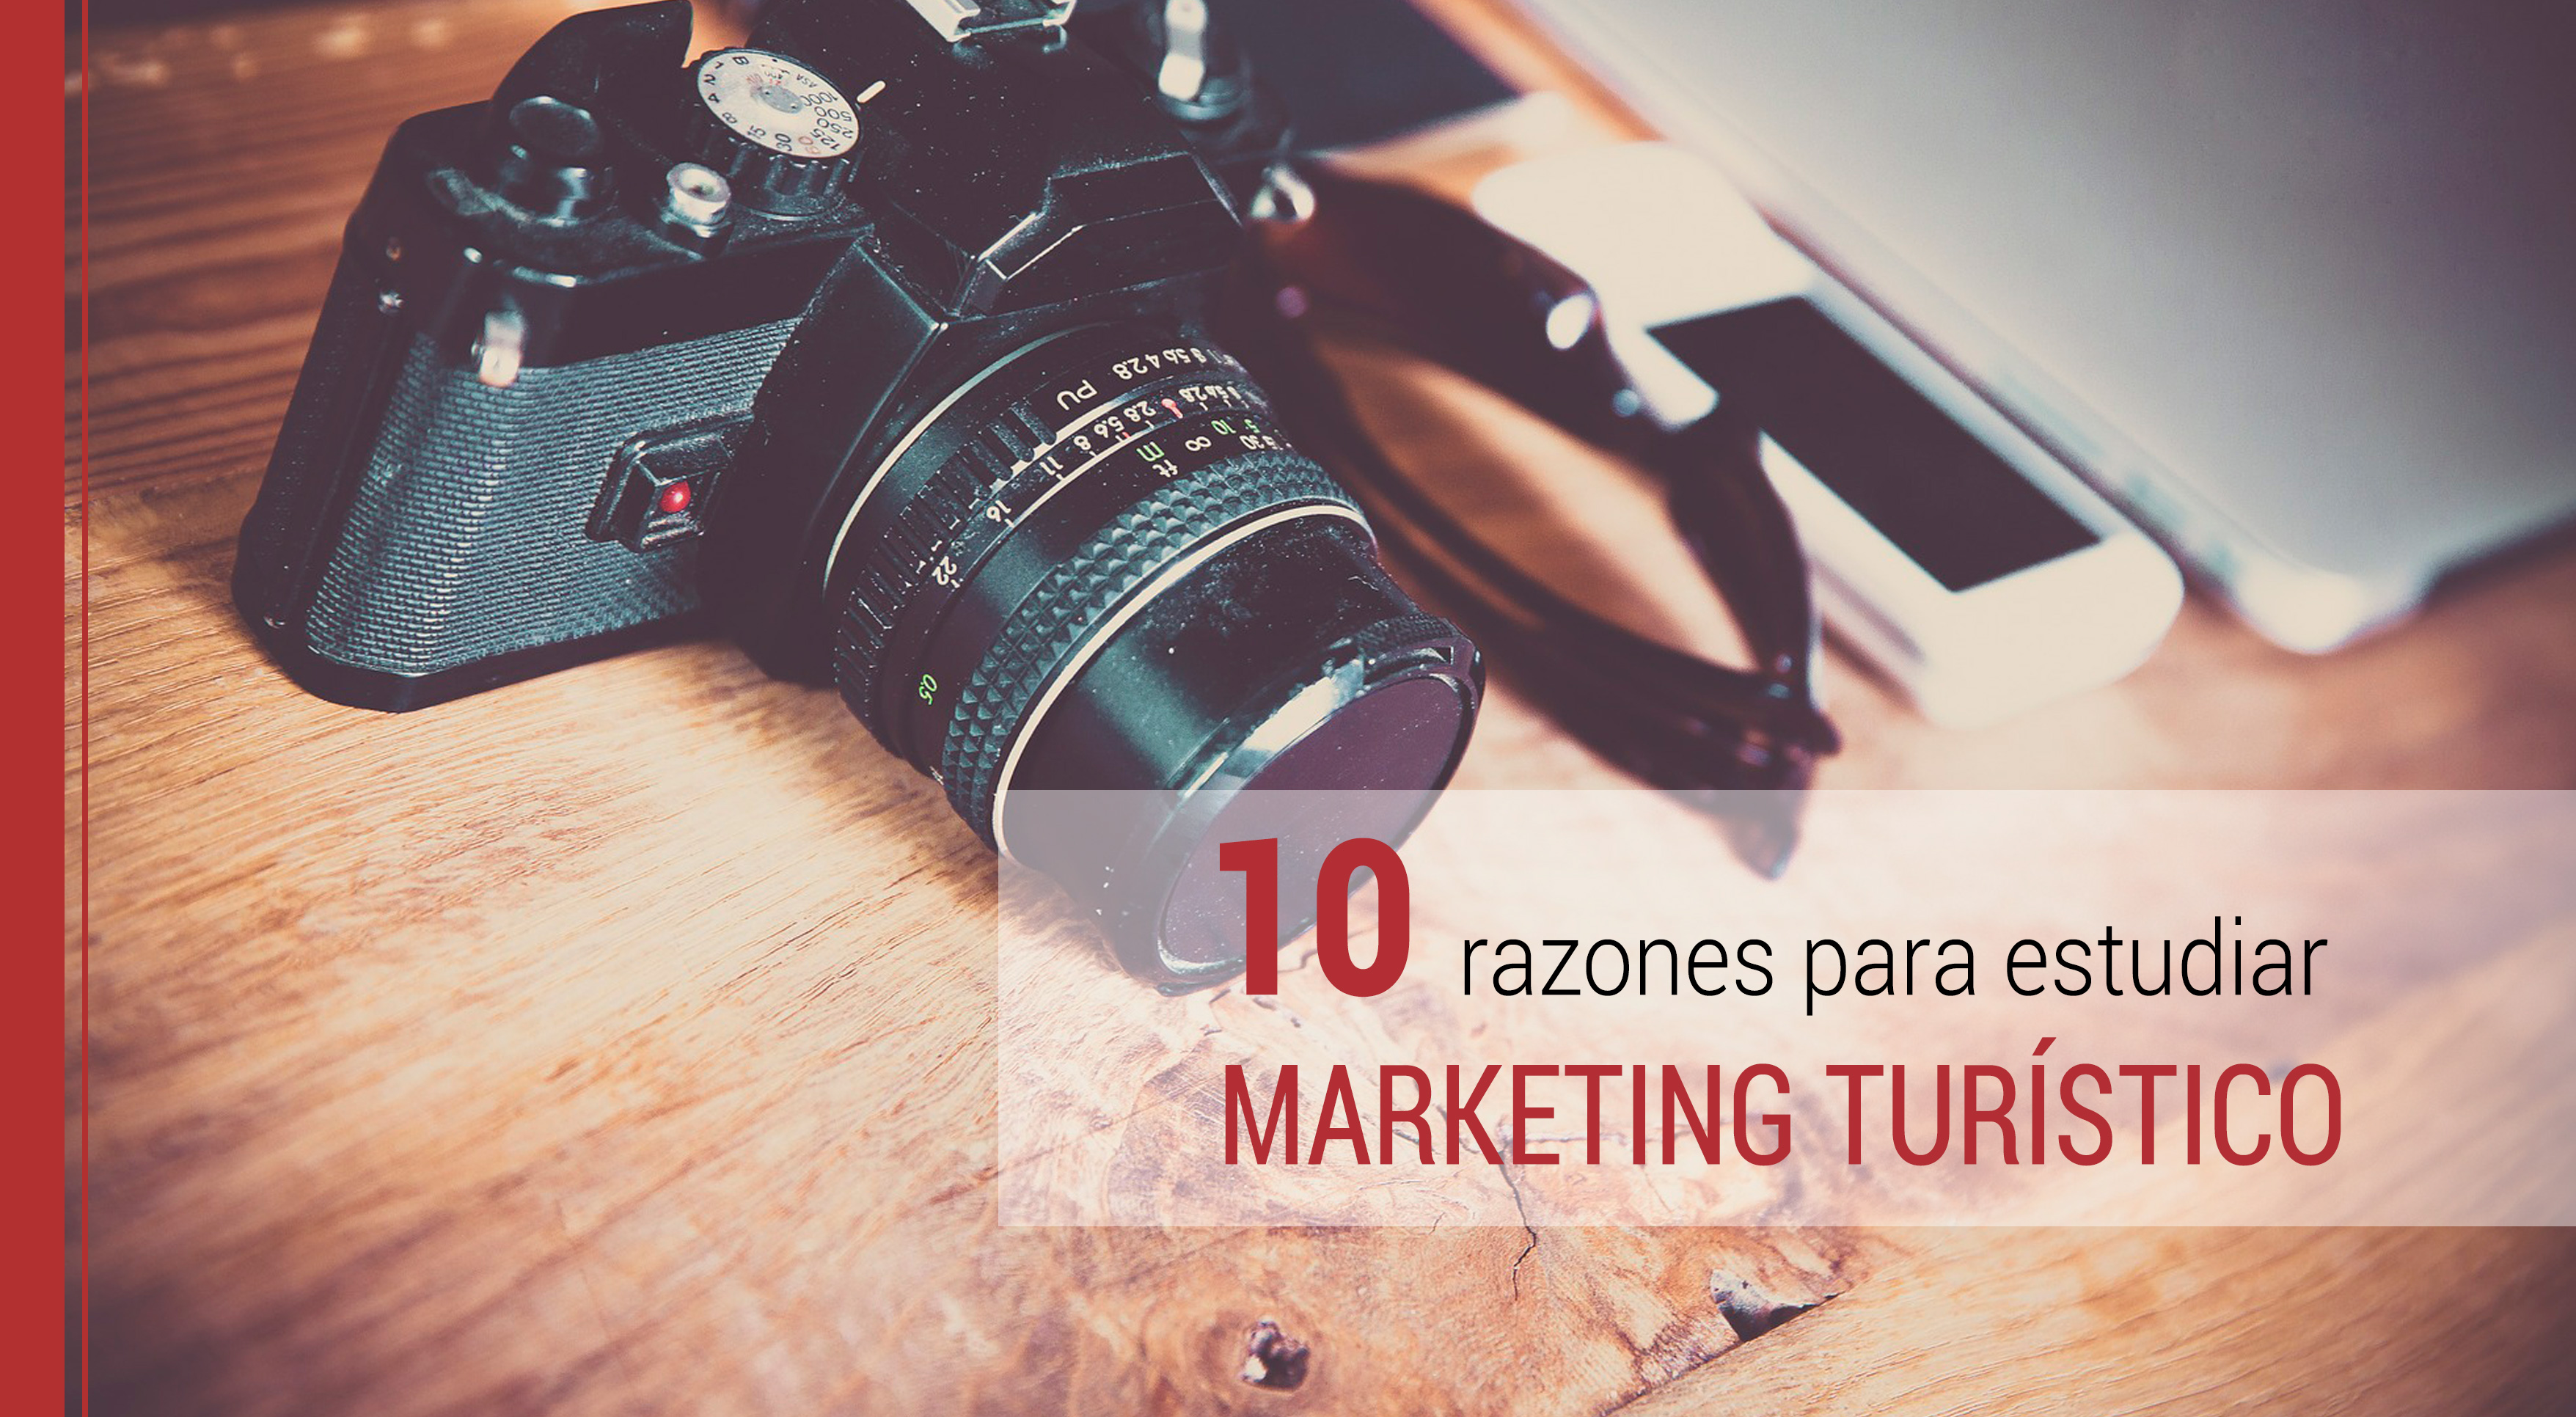 10-razones-estudiar-marketing-turistico 10 razones para estudiar marketing turístico